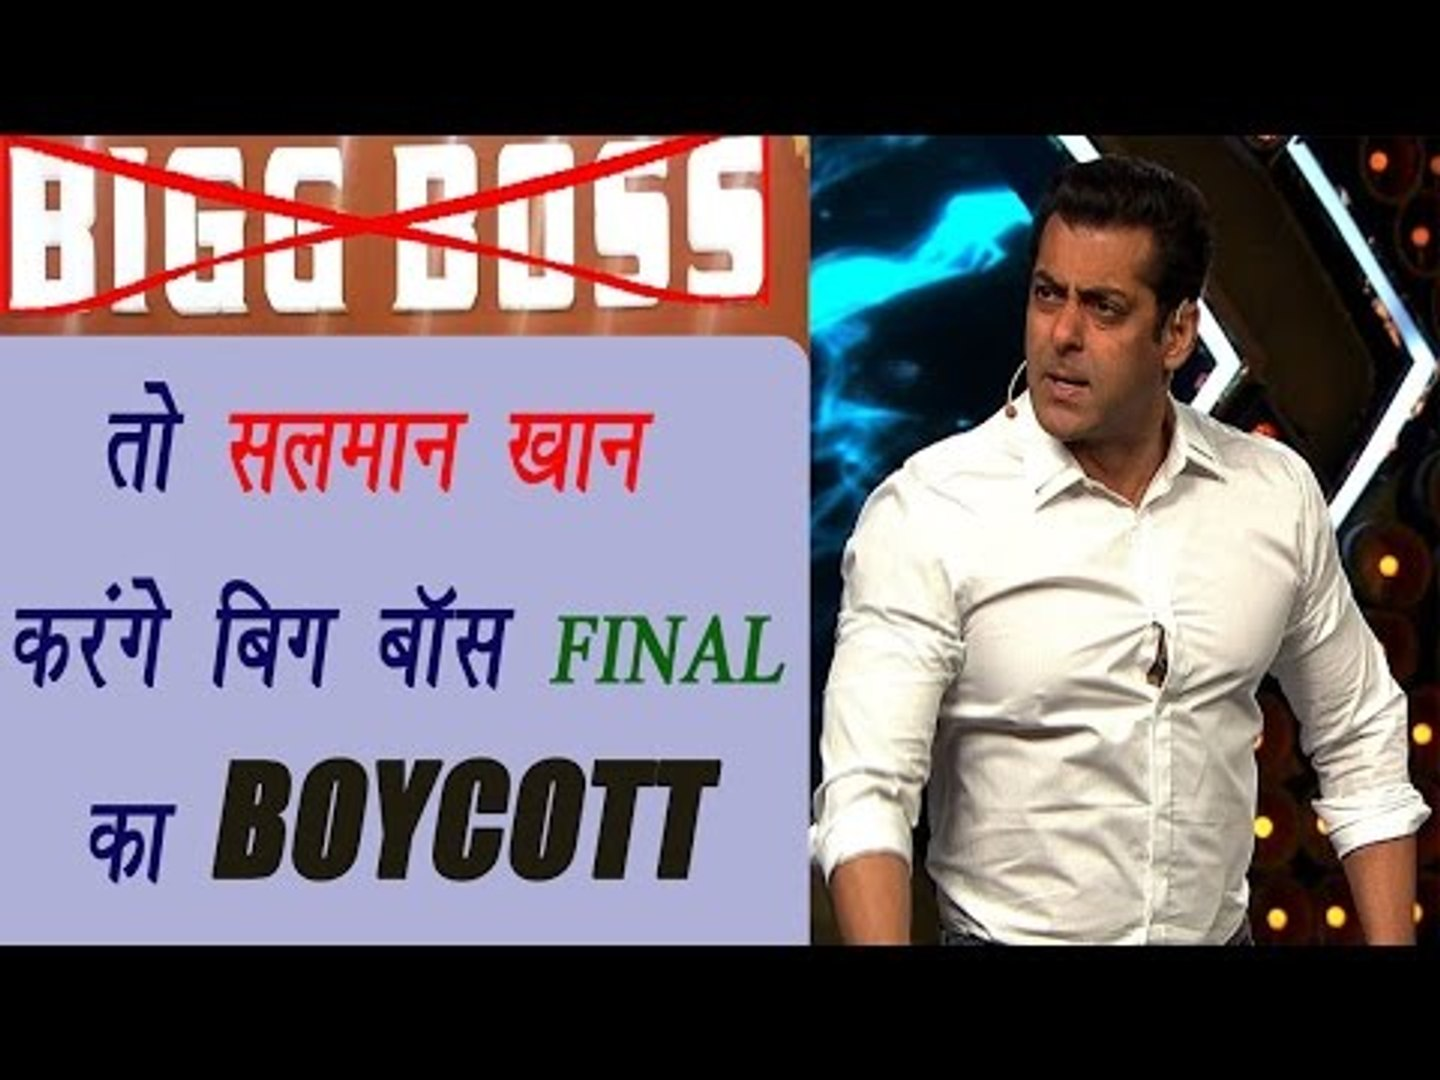 Bigg Boss 10: Salman Khan to boycott BB 10 grand finale? | FilmiBeat